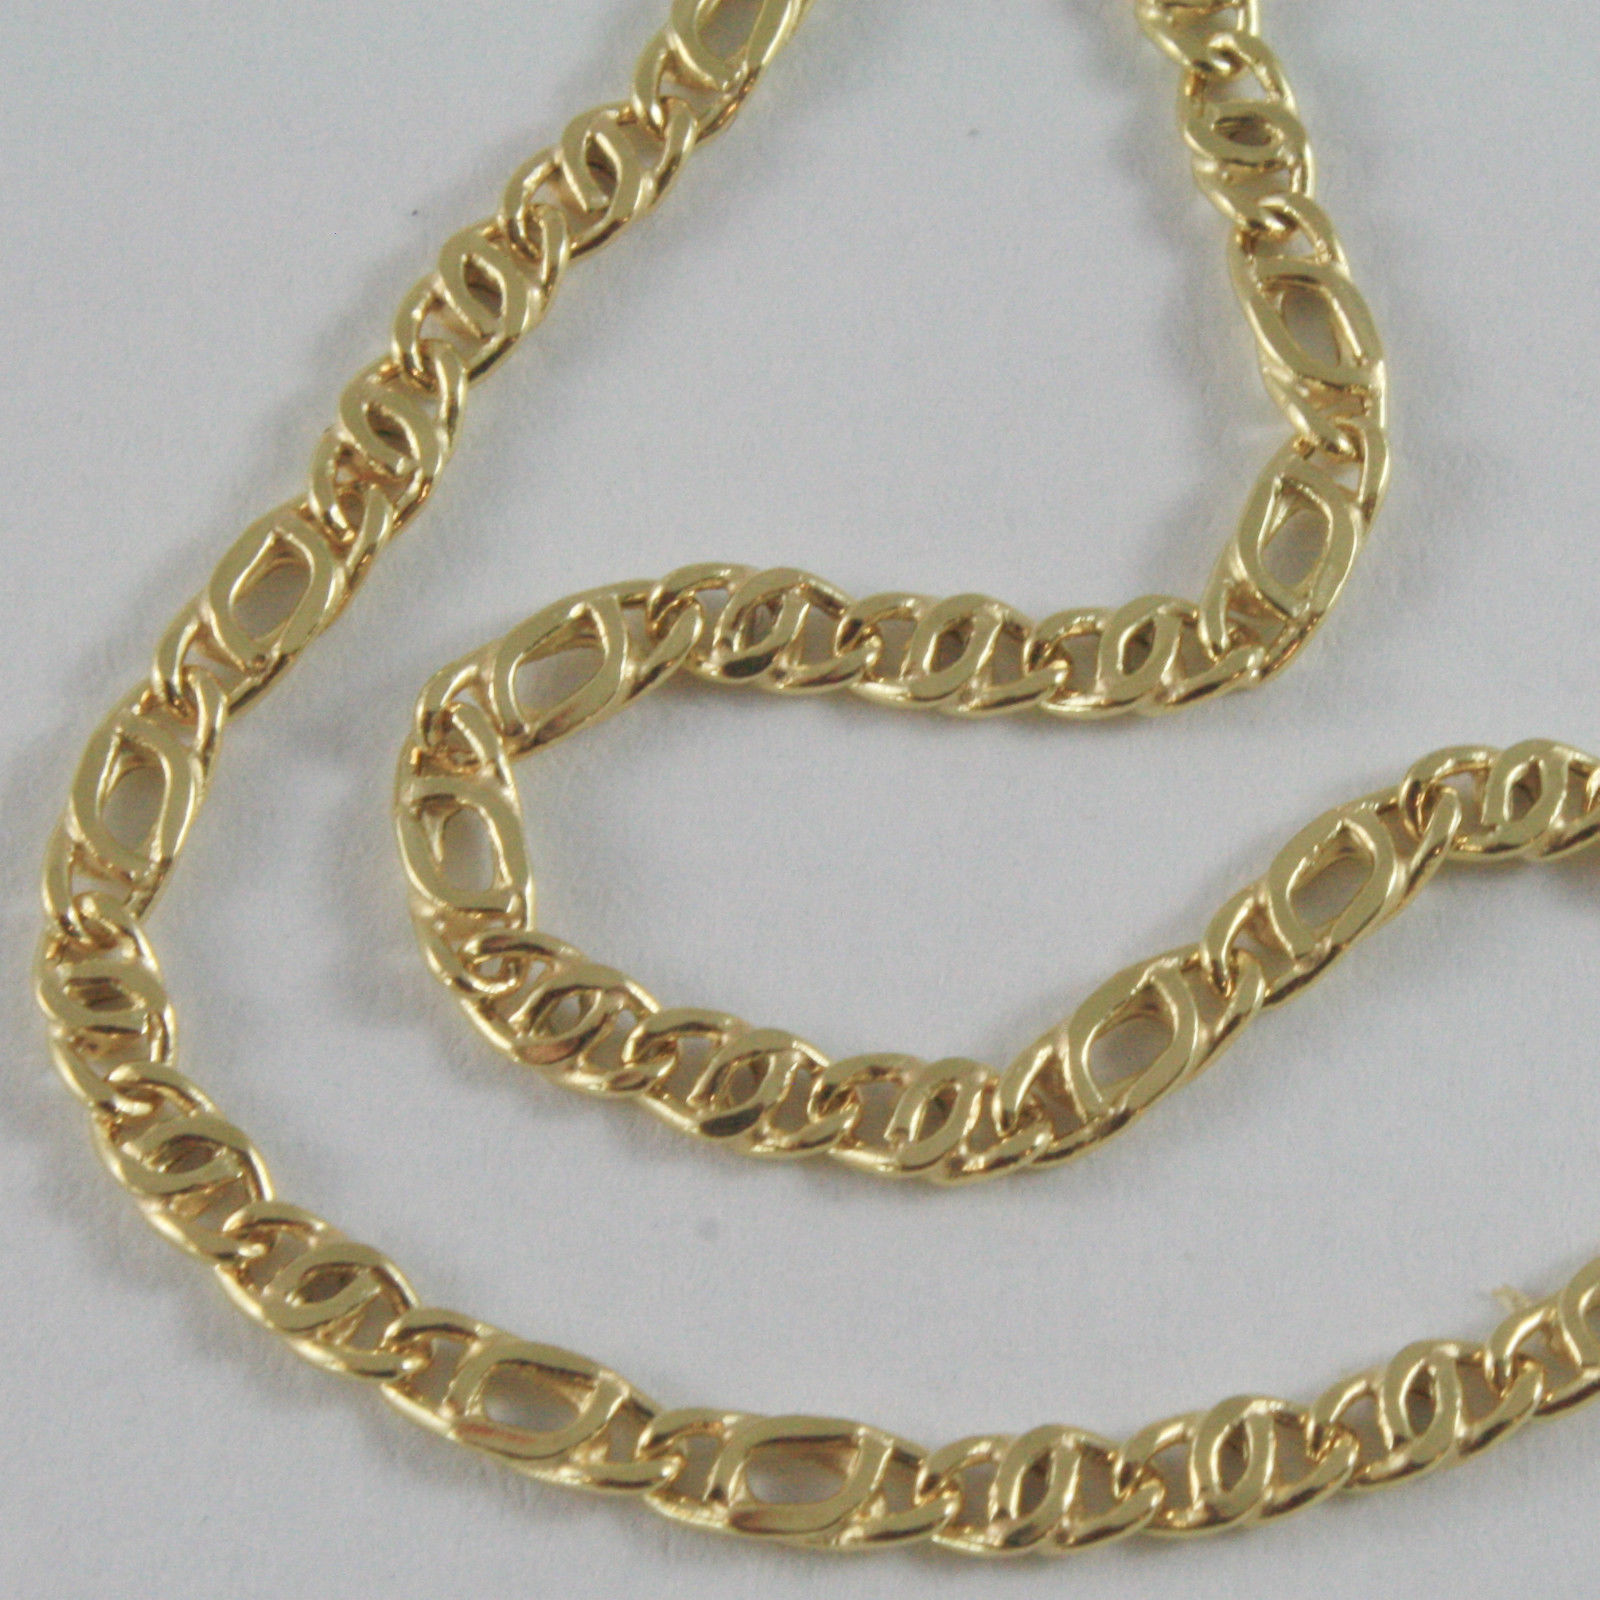 18K YELLOW GOLD CHAIN, ALTERNATE FLAT EYE LINK, NECKLACE MADE IN ITALY, BRIGHT